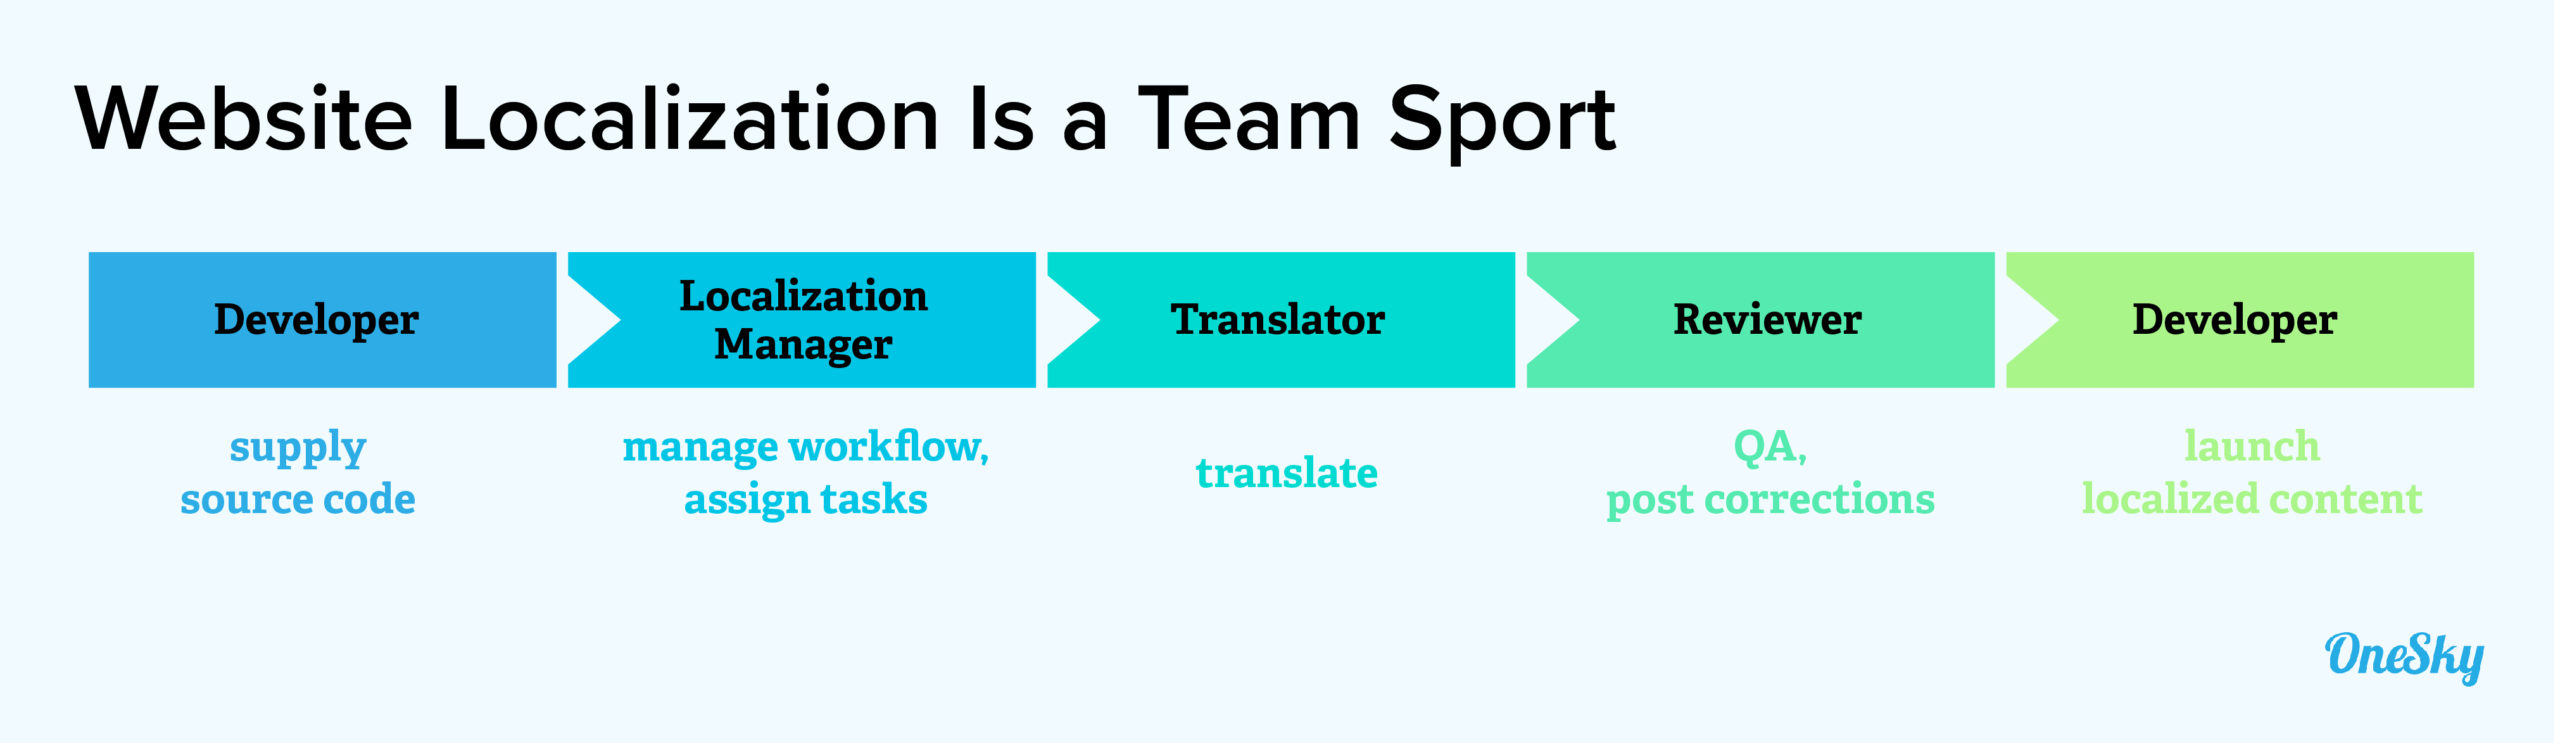 Assemble Your Localization Team